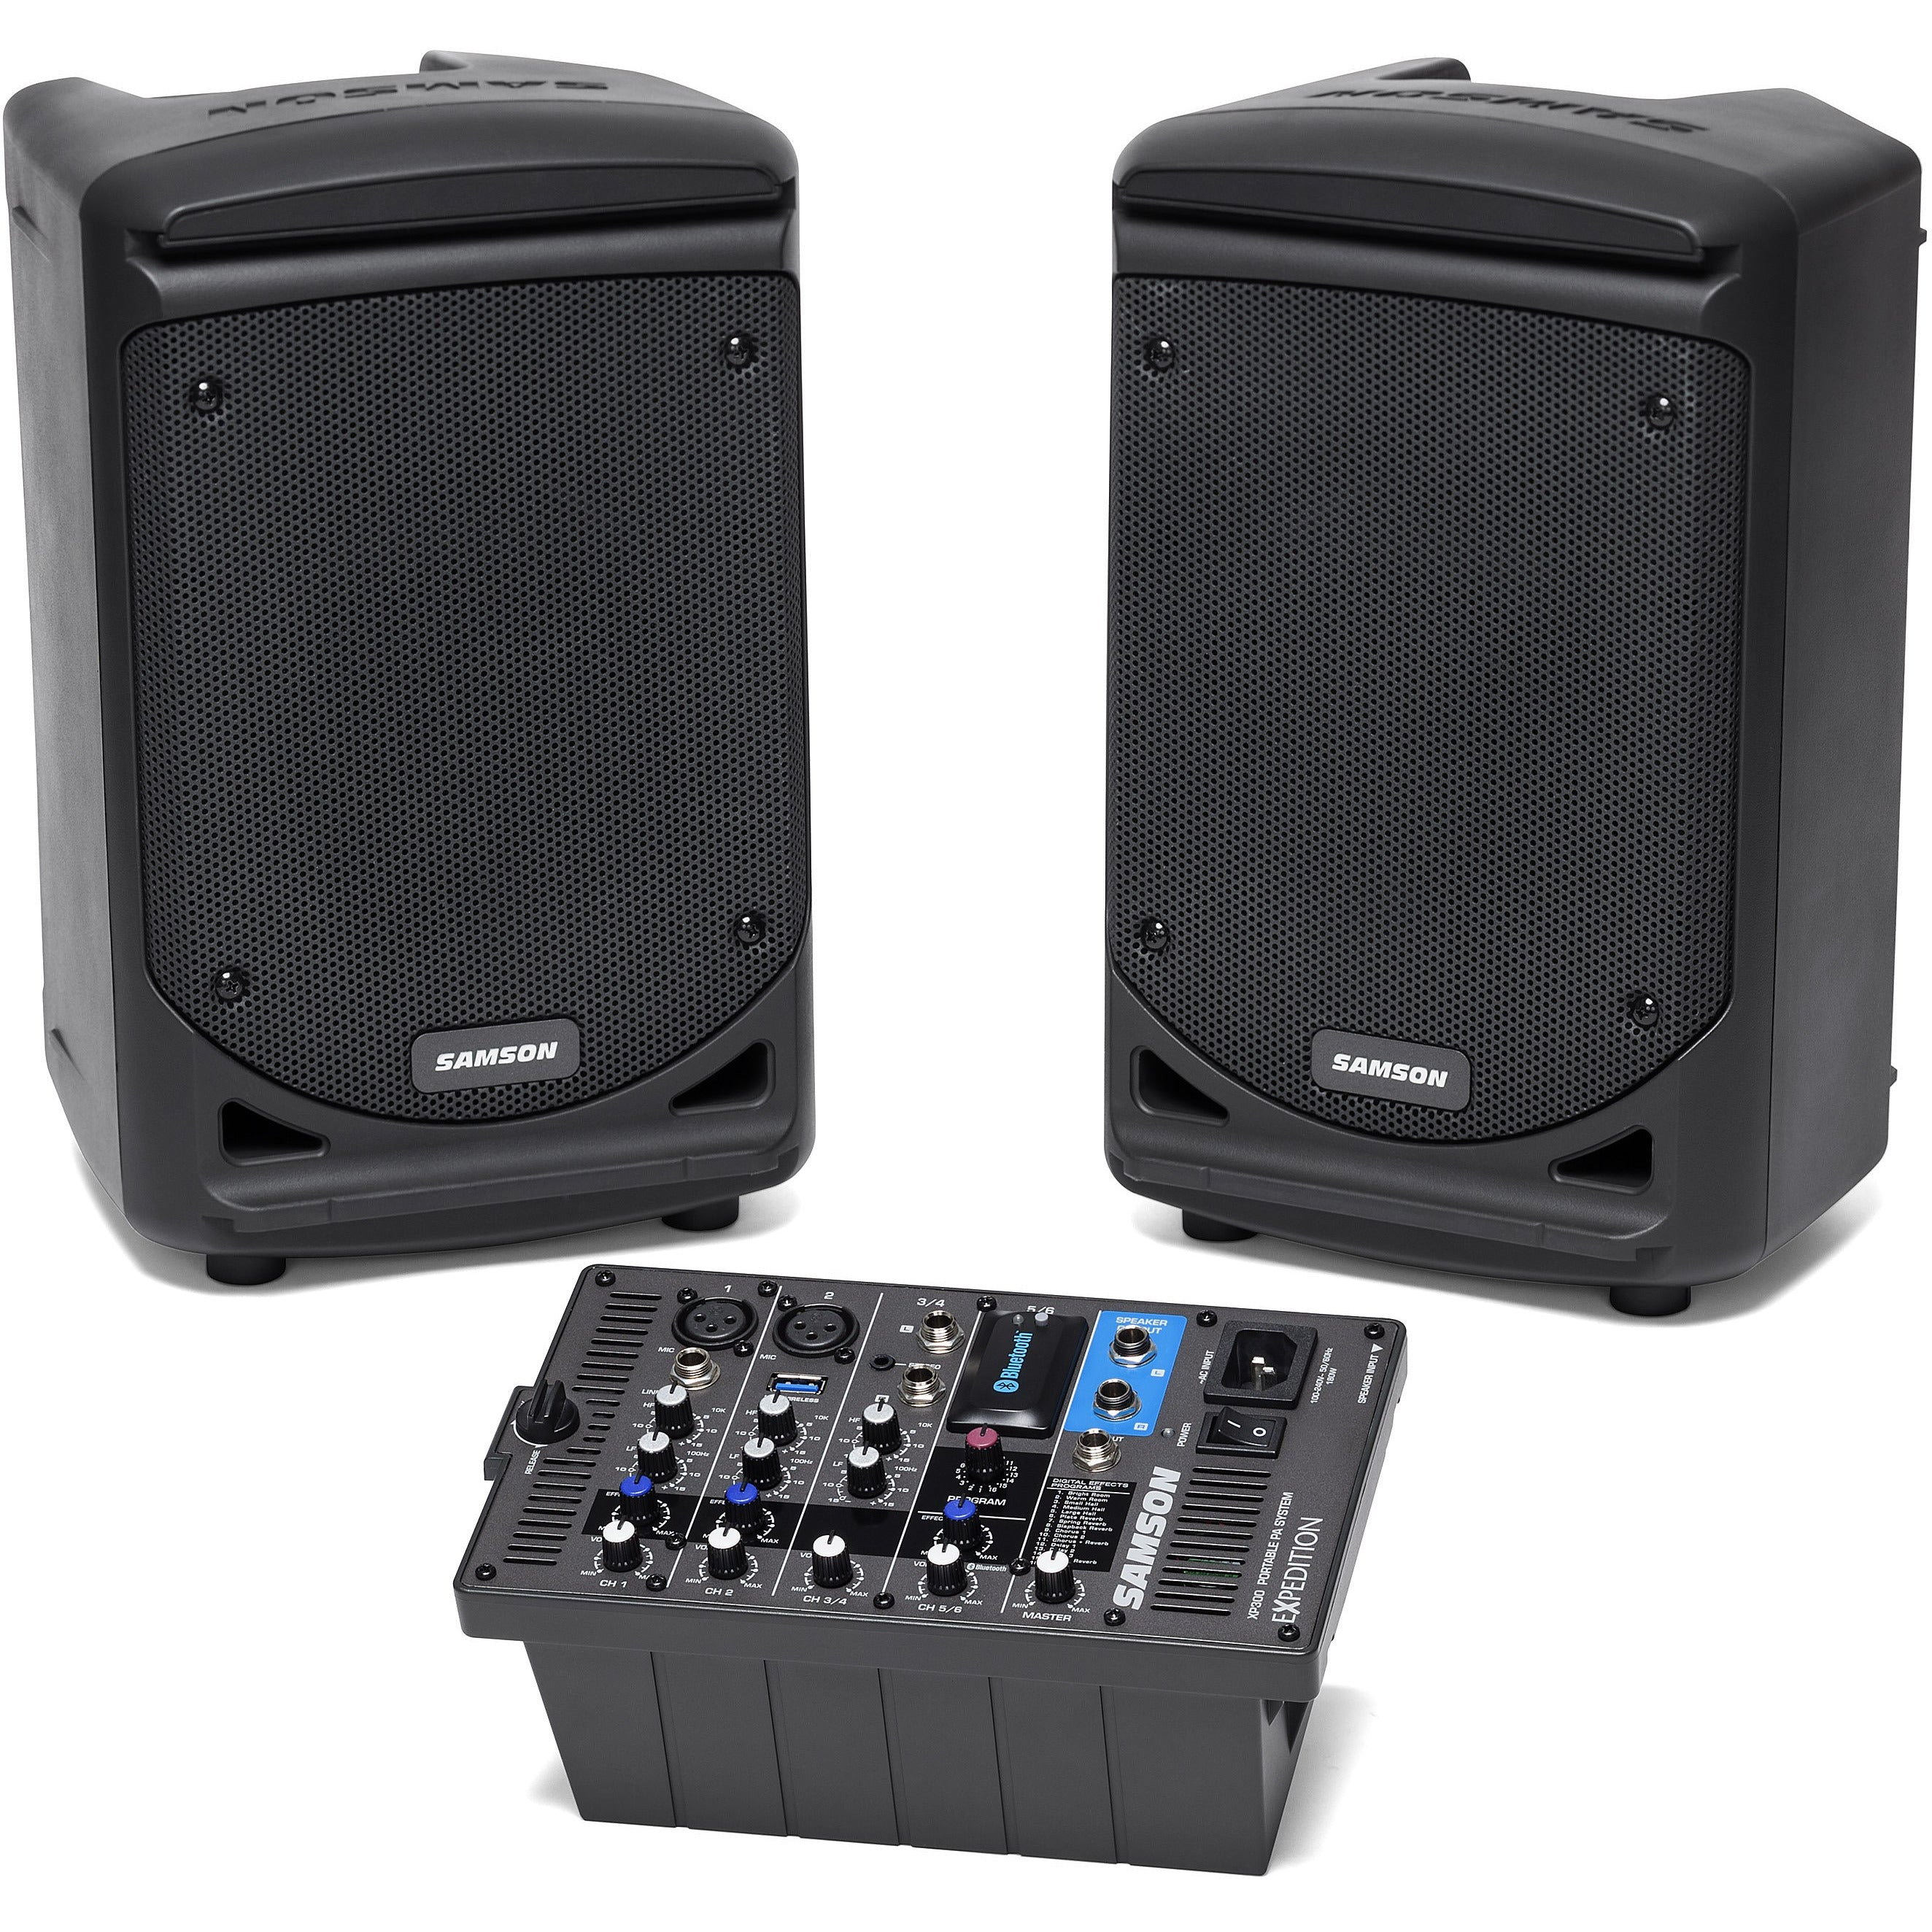 Samson XP300B Samson 300w Portable PA w/ Bluetooth